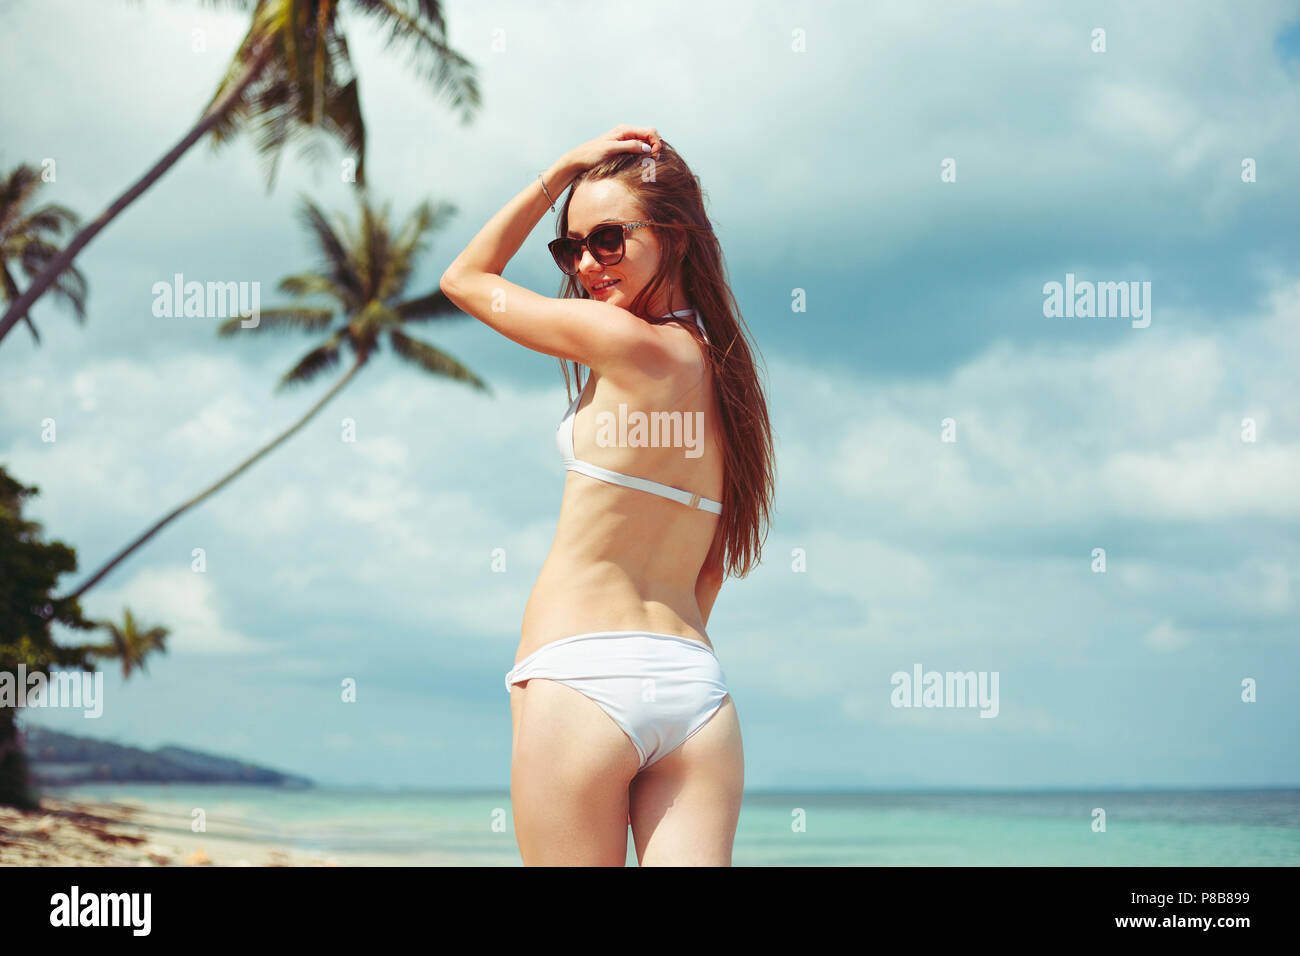 back view of smiling woman in bikini and sunglasses on beach - Stock Image